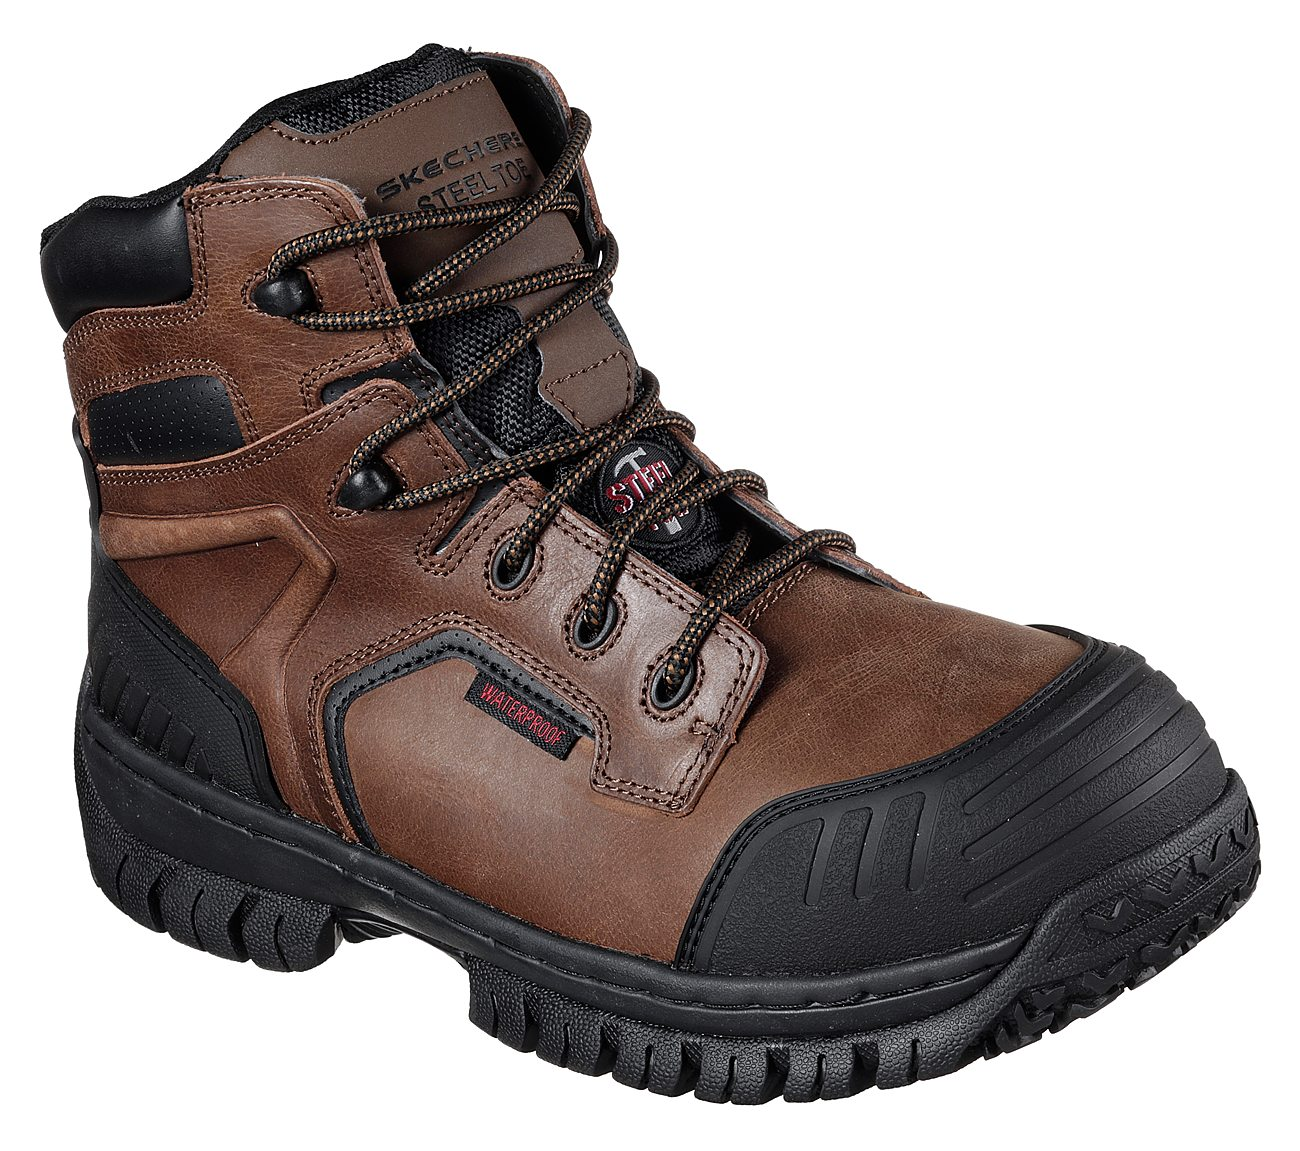 Details about Skechers Delleker Lakehead Steel Toe Work Boot Brown Orange Mens Leather